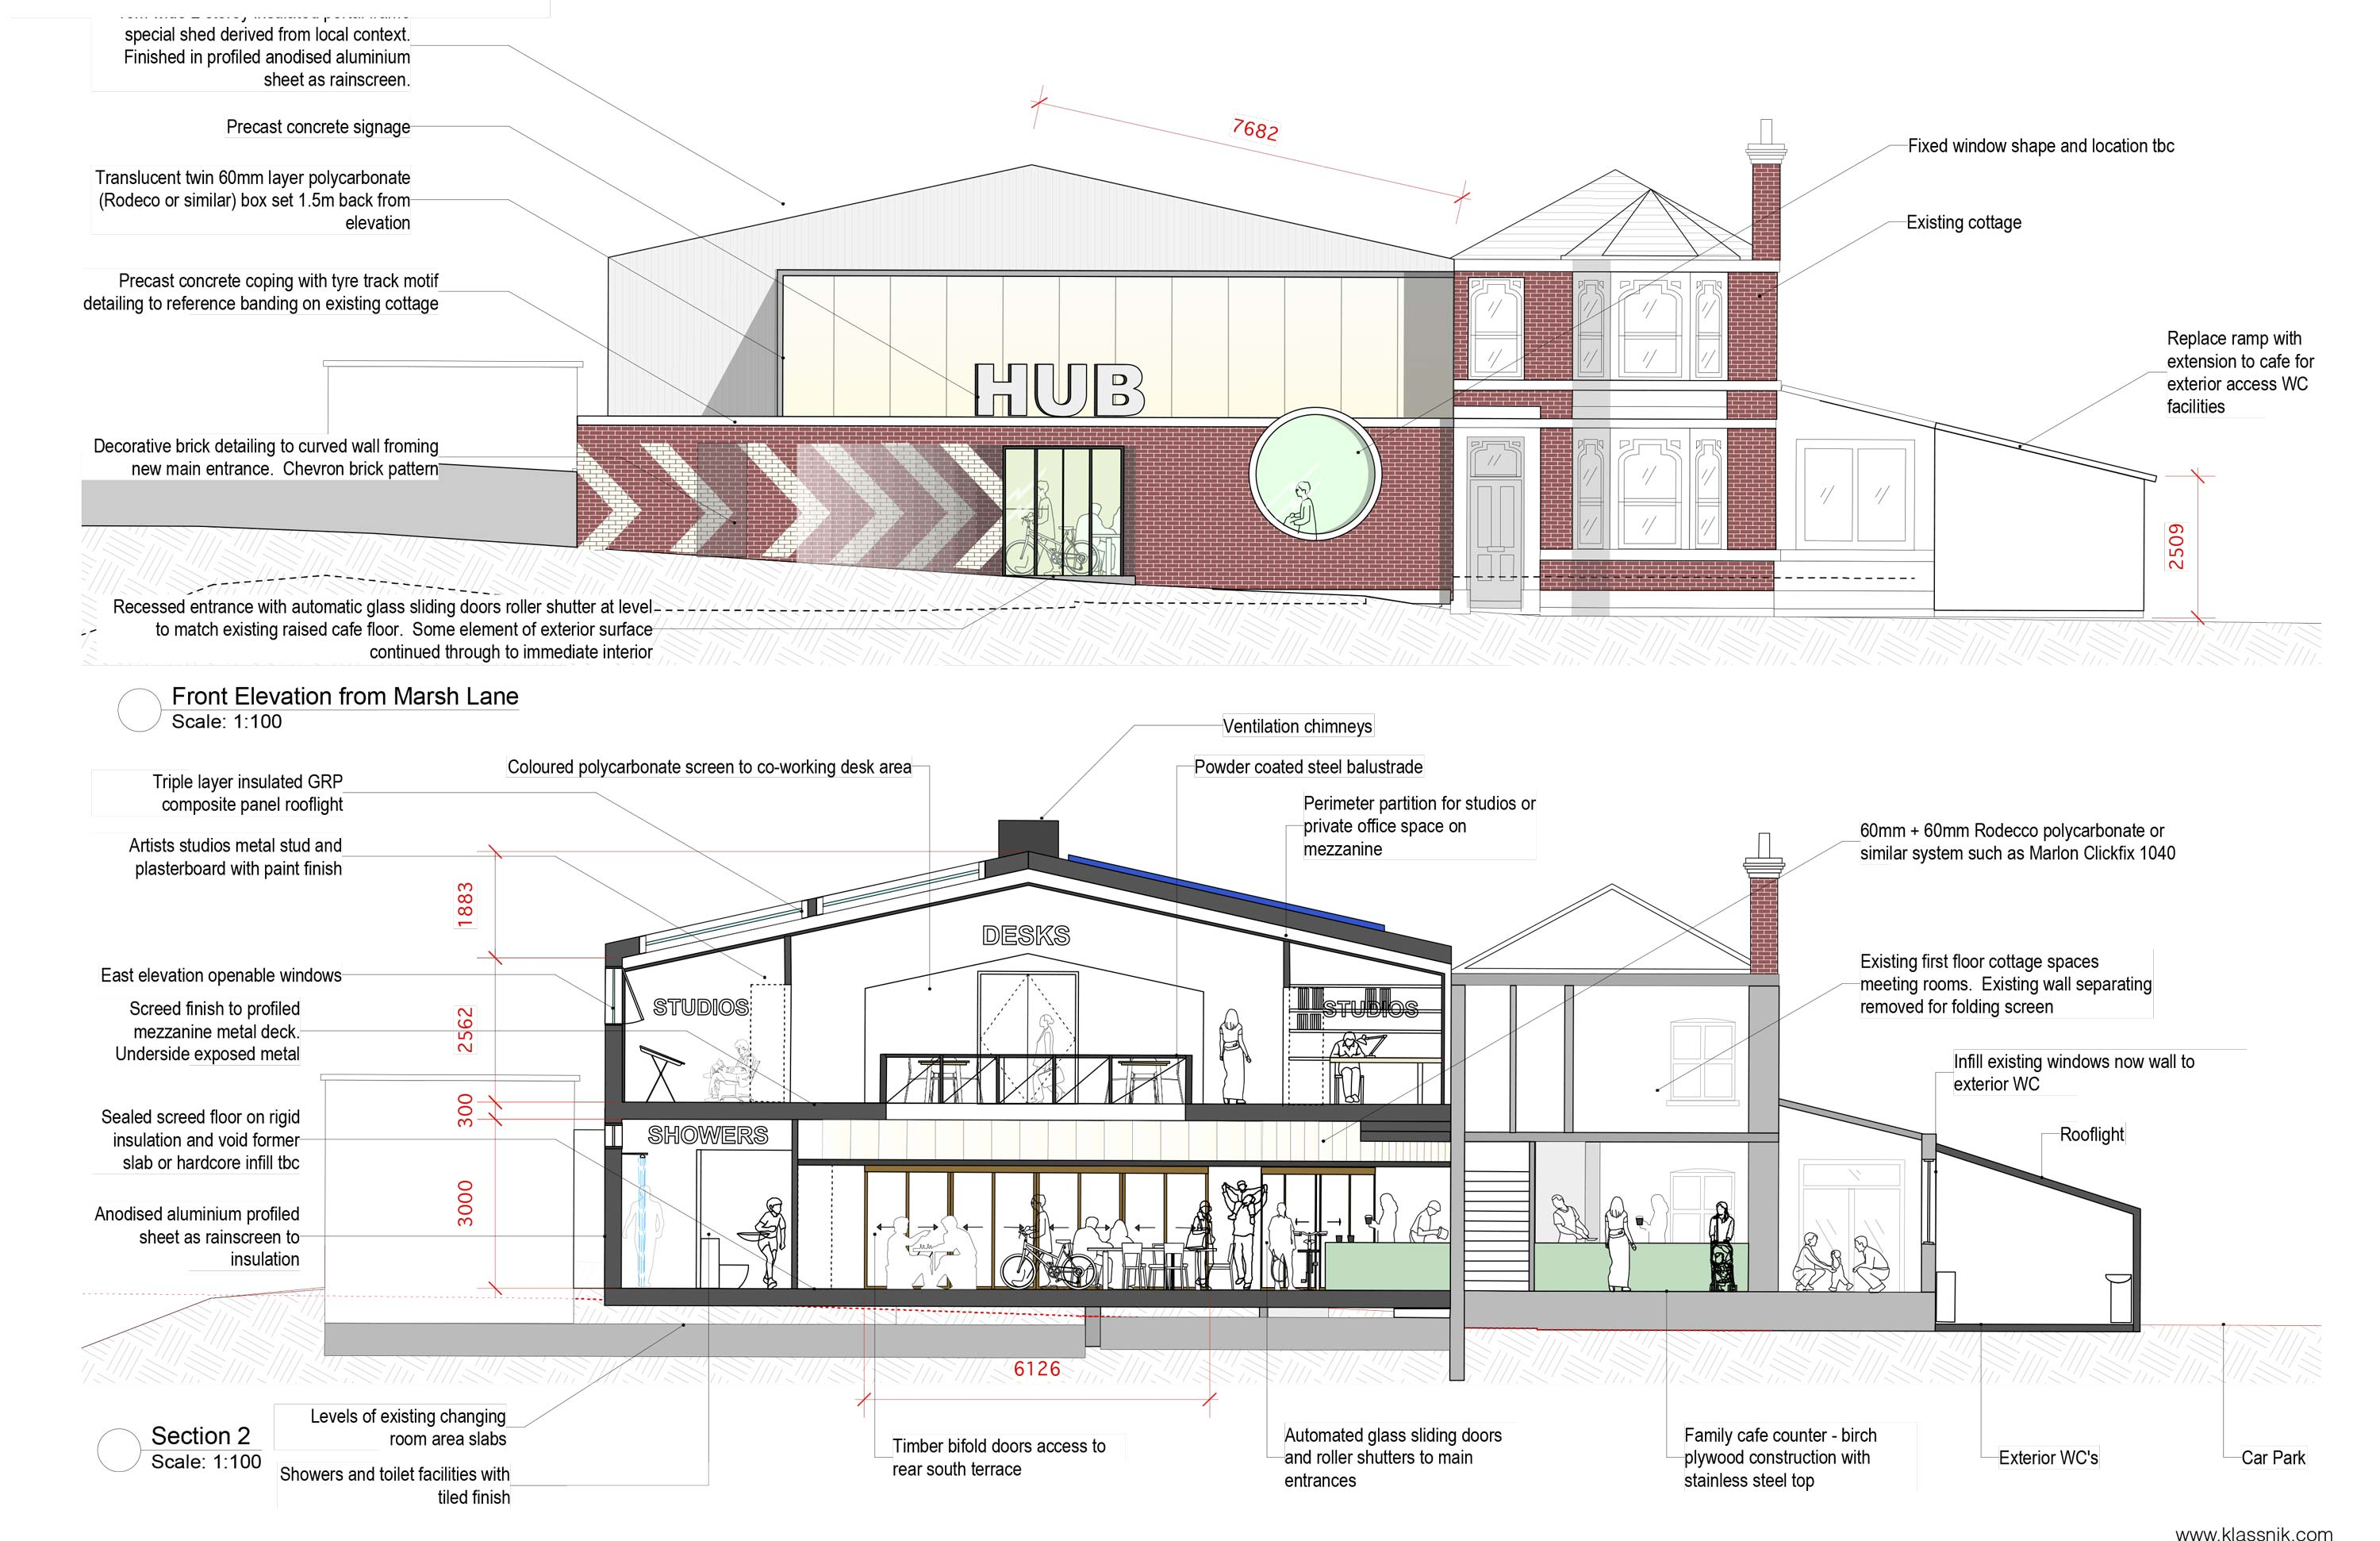 Architects Elevation drawing and section of Cycle Hub Front